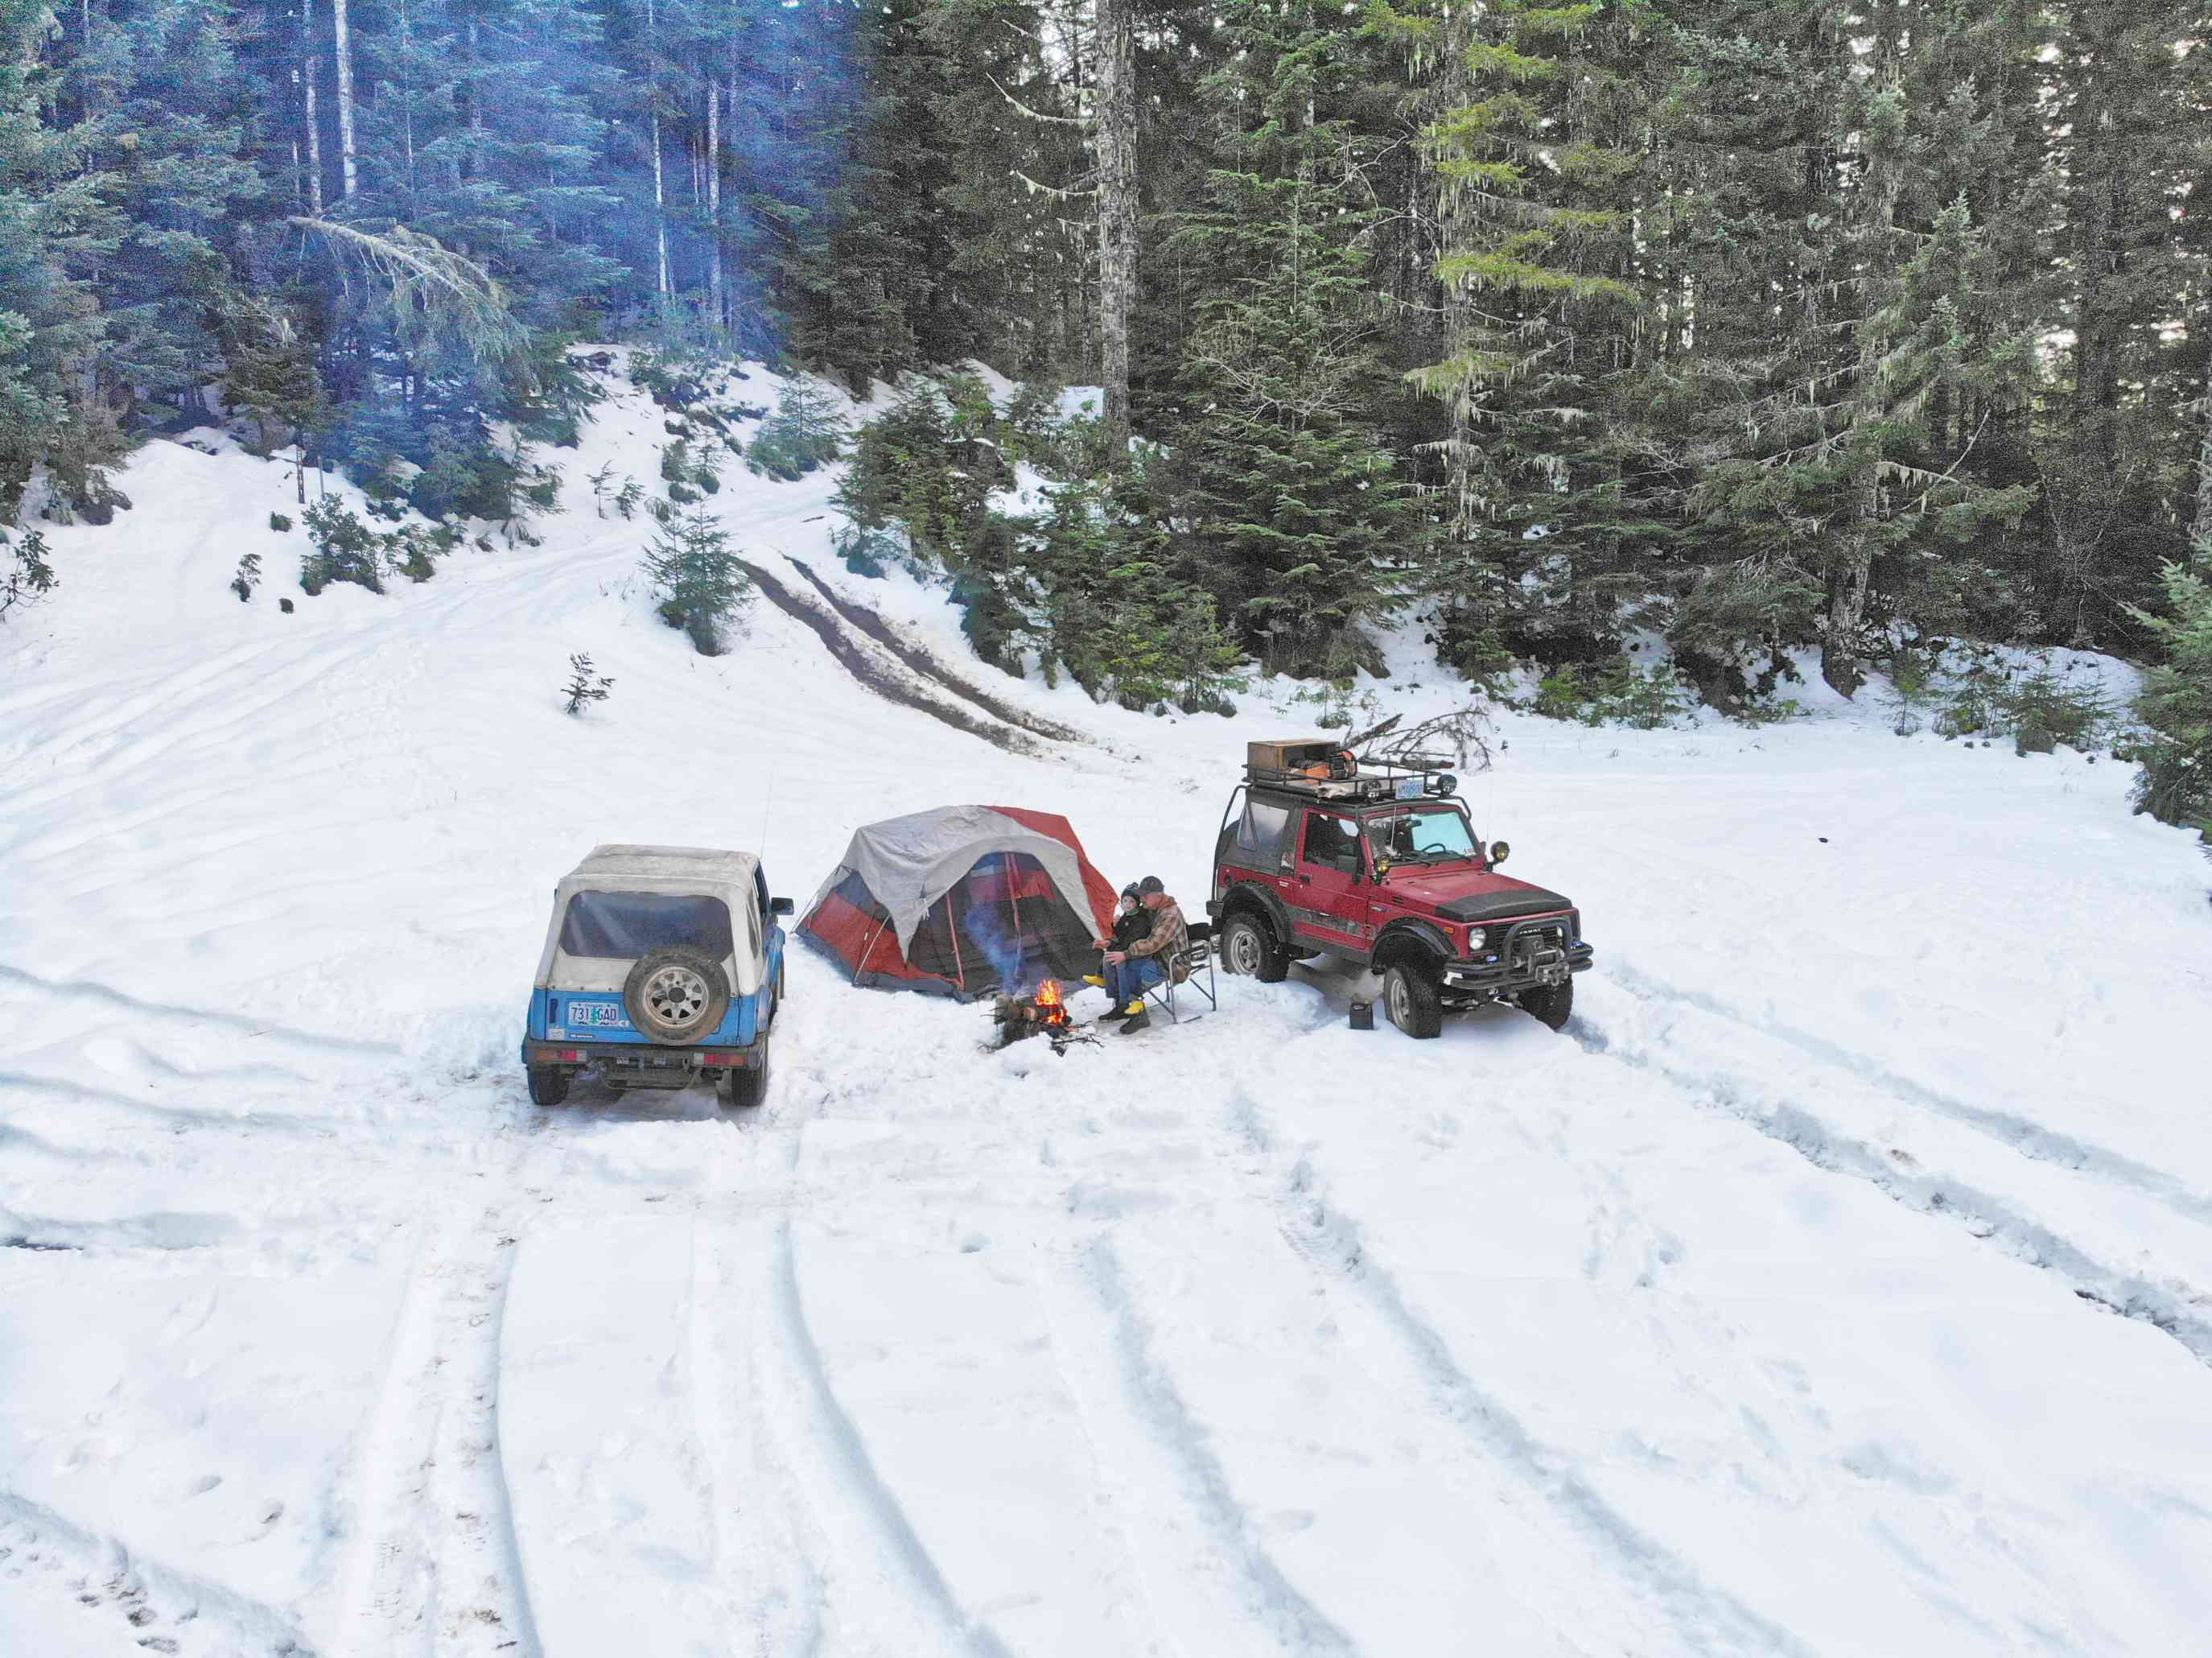 two jeeps in deep snowy forest with campsite